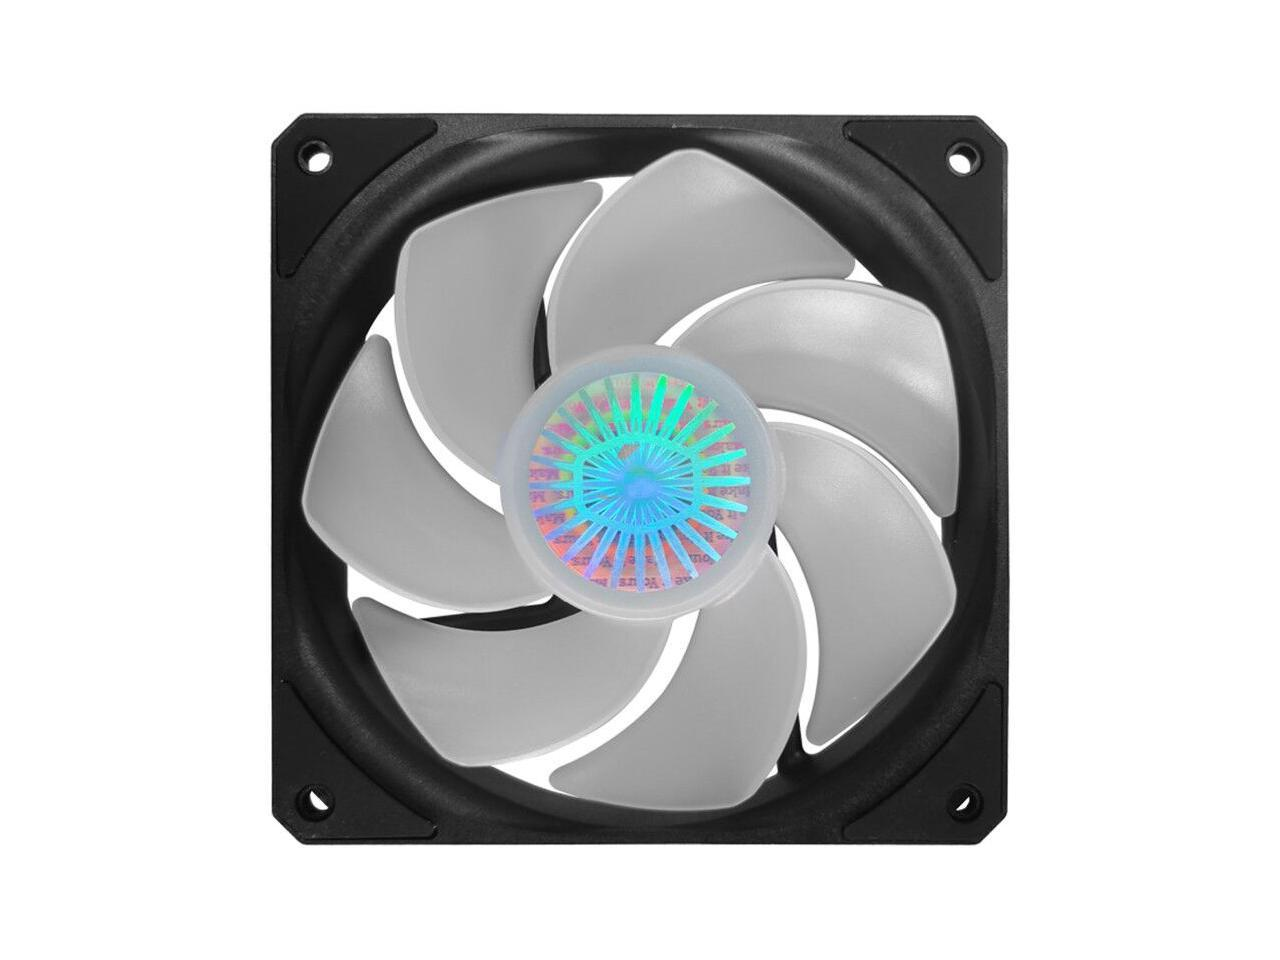 COOLER MASTER SICKLEFLOW 120 ARGB REVERSE EDITION 120mm CASING FAN